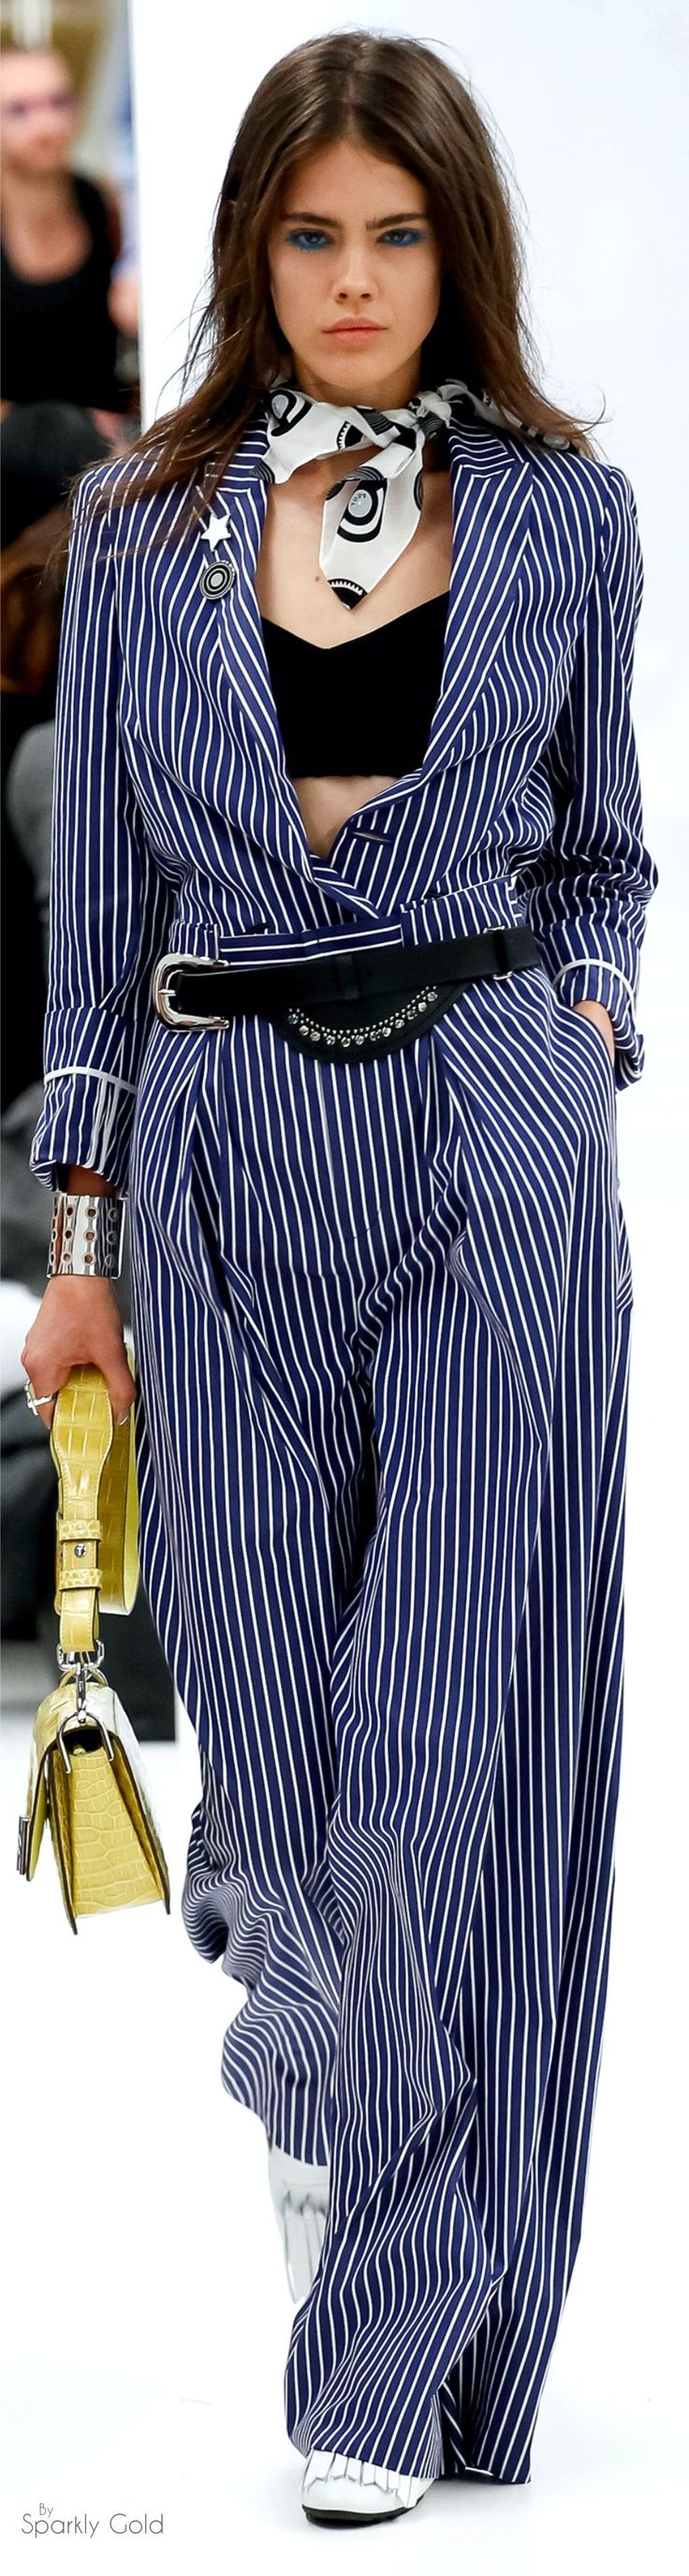 Tod's Spring 2016 RTW women fashion outfit clothing style apparel @roressclothes closet ideas